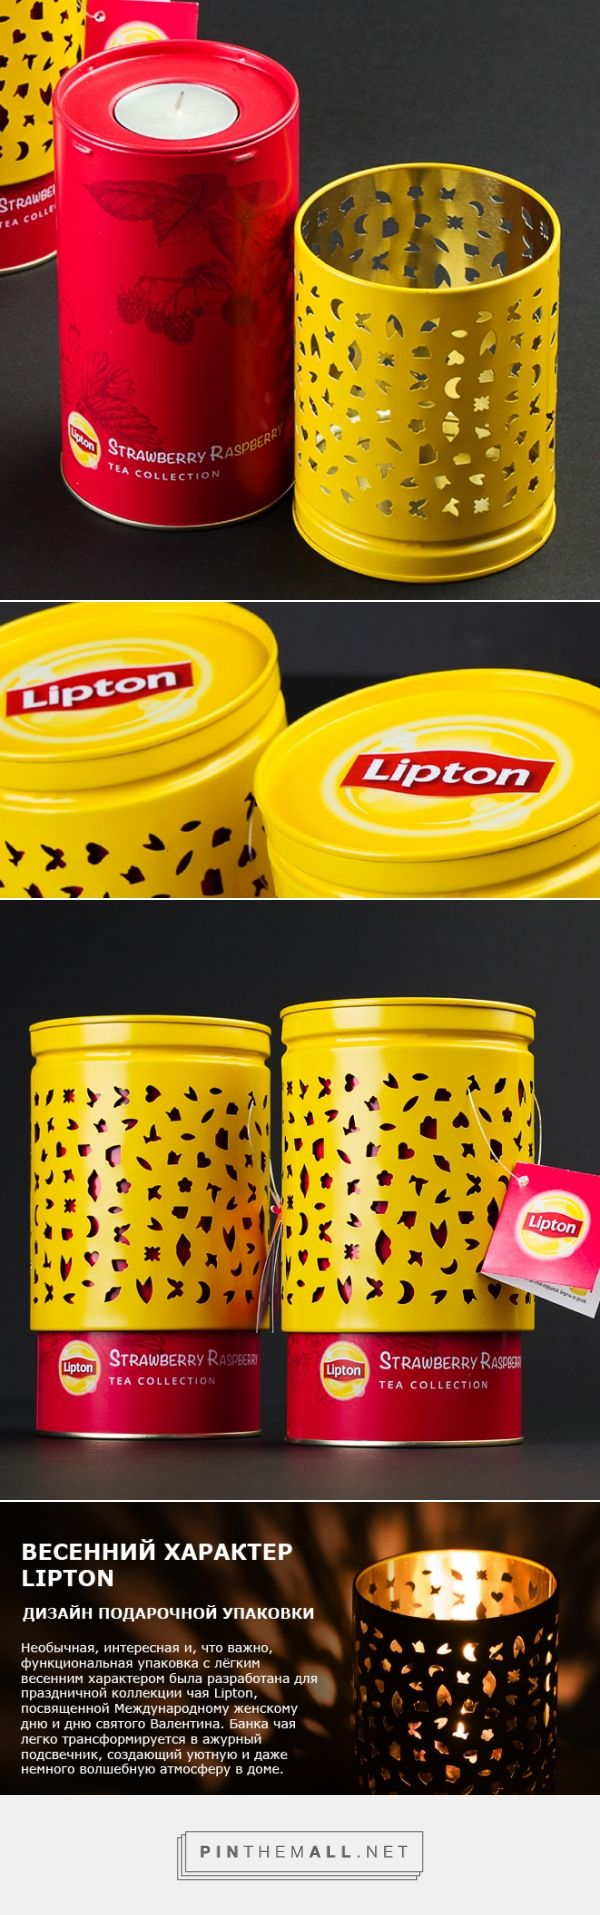 Lipton – чай от Mildberry curated by Packaging Diva PD. Great way to repurpose this strawberry raspberry tea packaging collection.